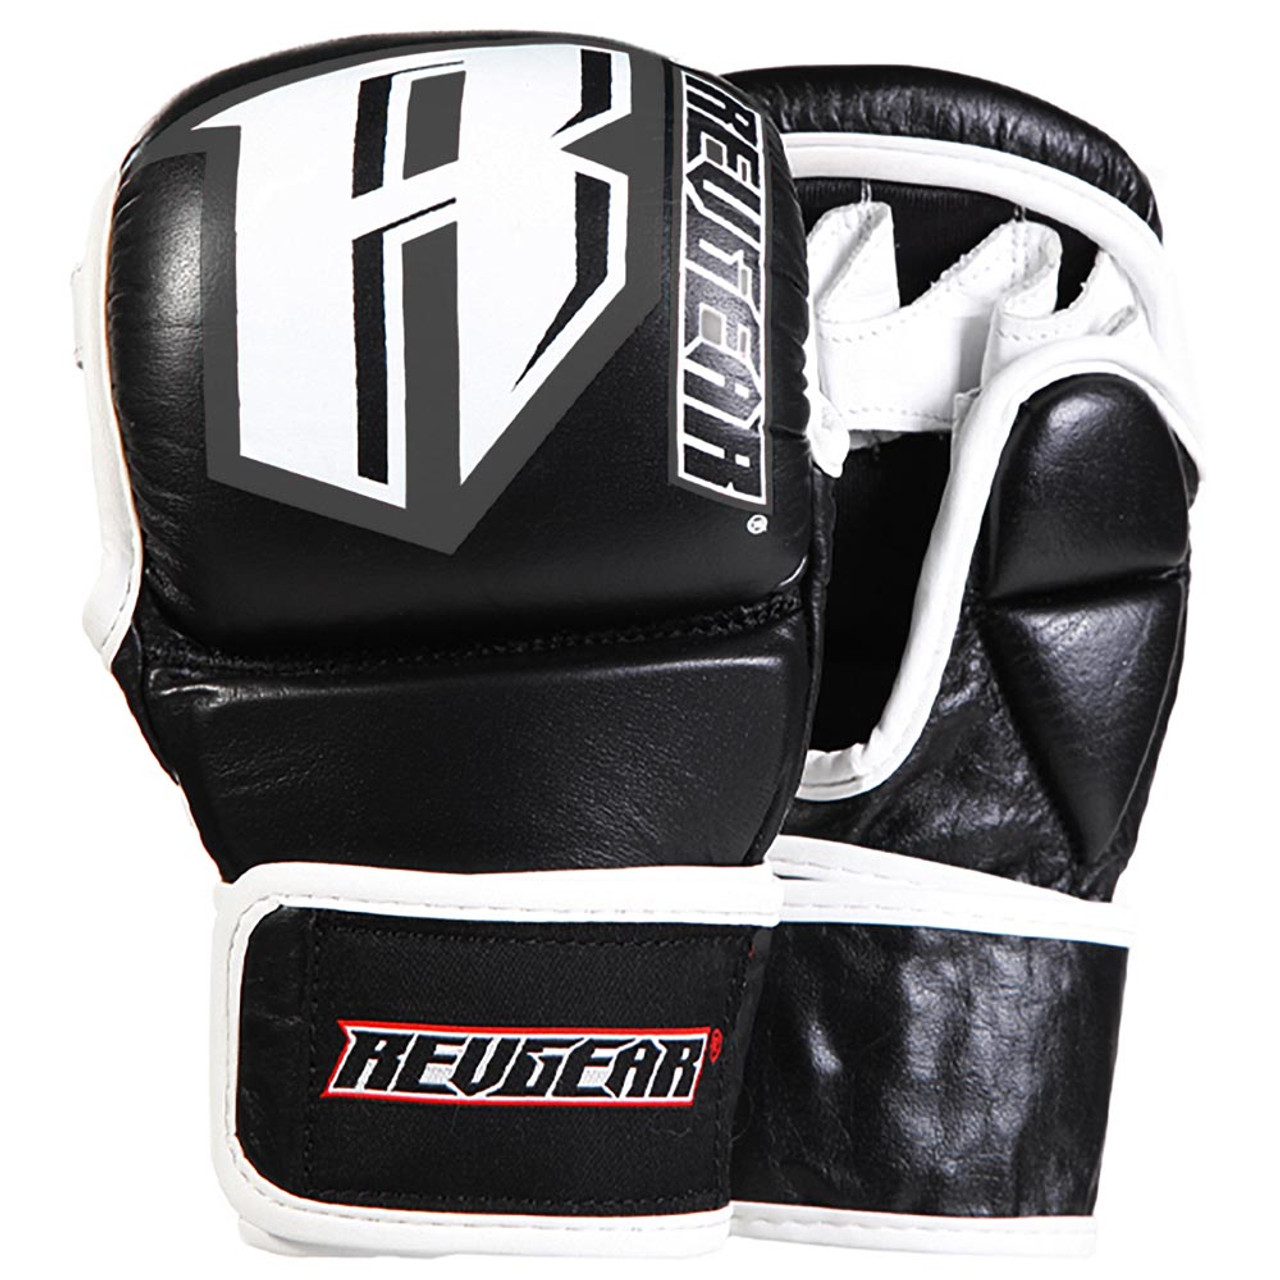 Black Boxing Gloves Art Leather Punch Training Sparring Kickboxing MMA Fighting